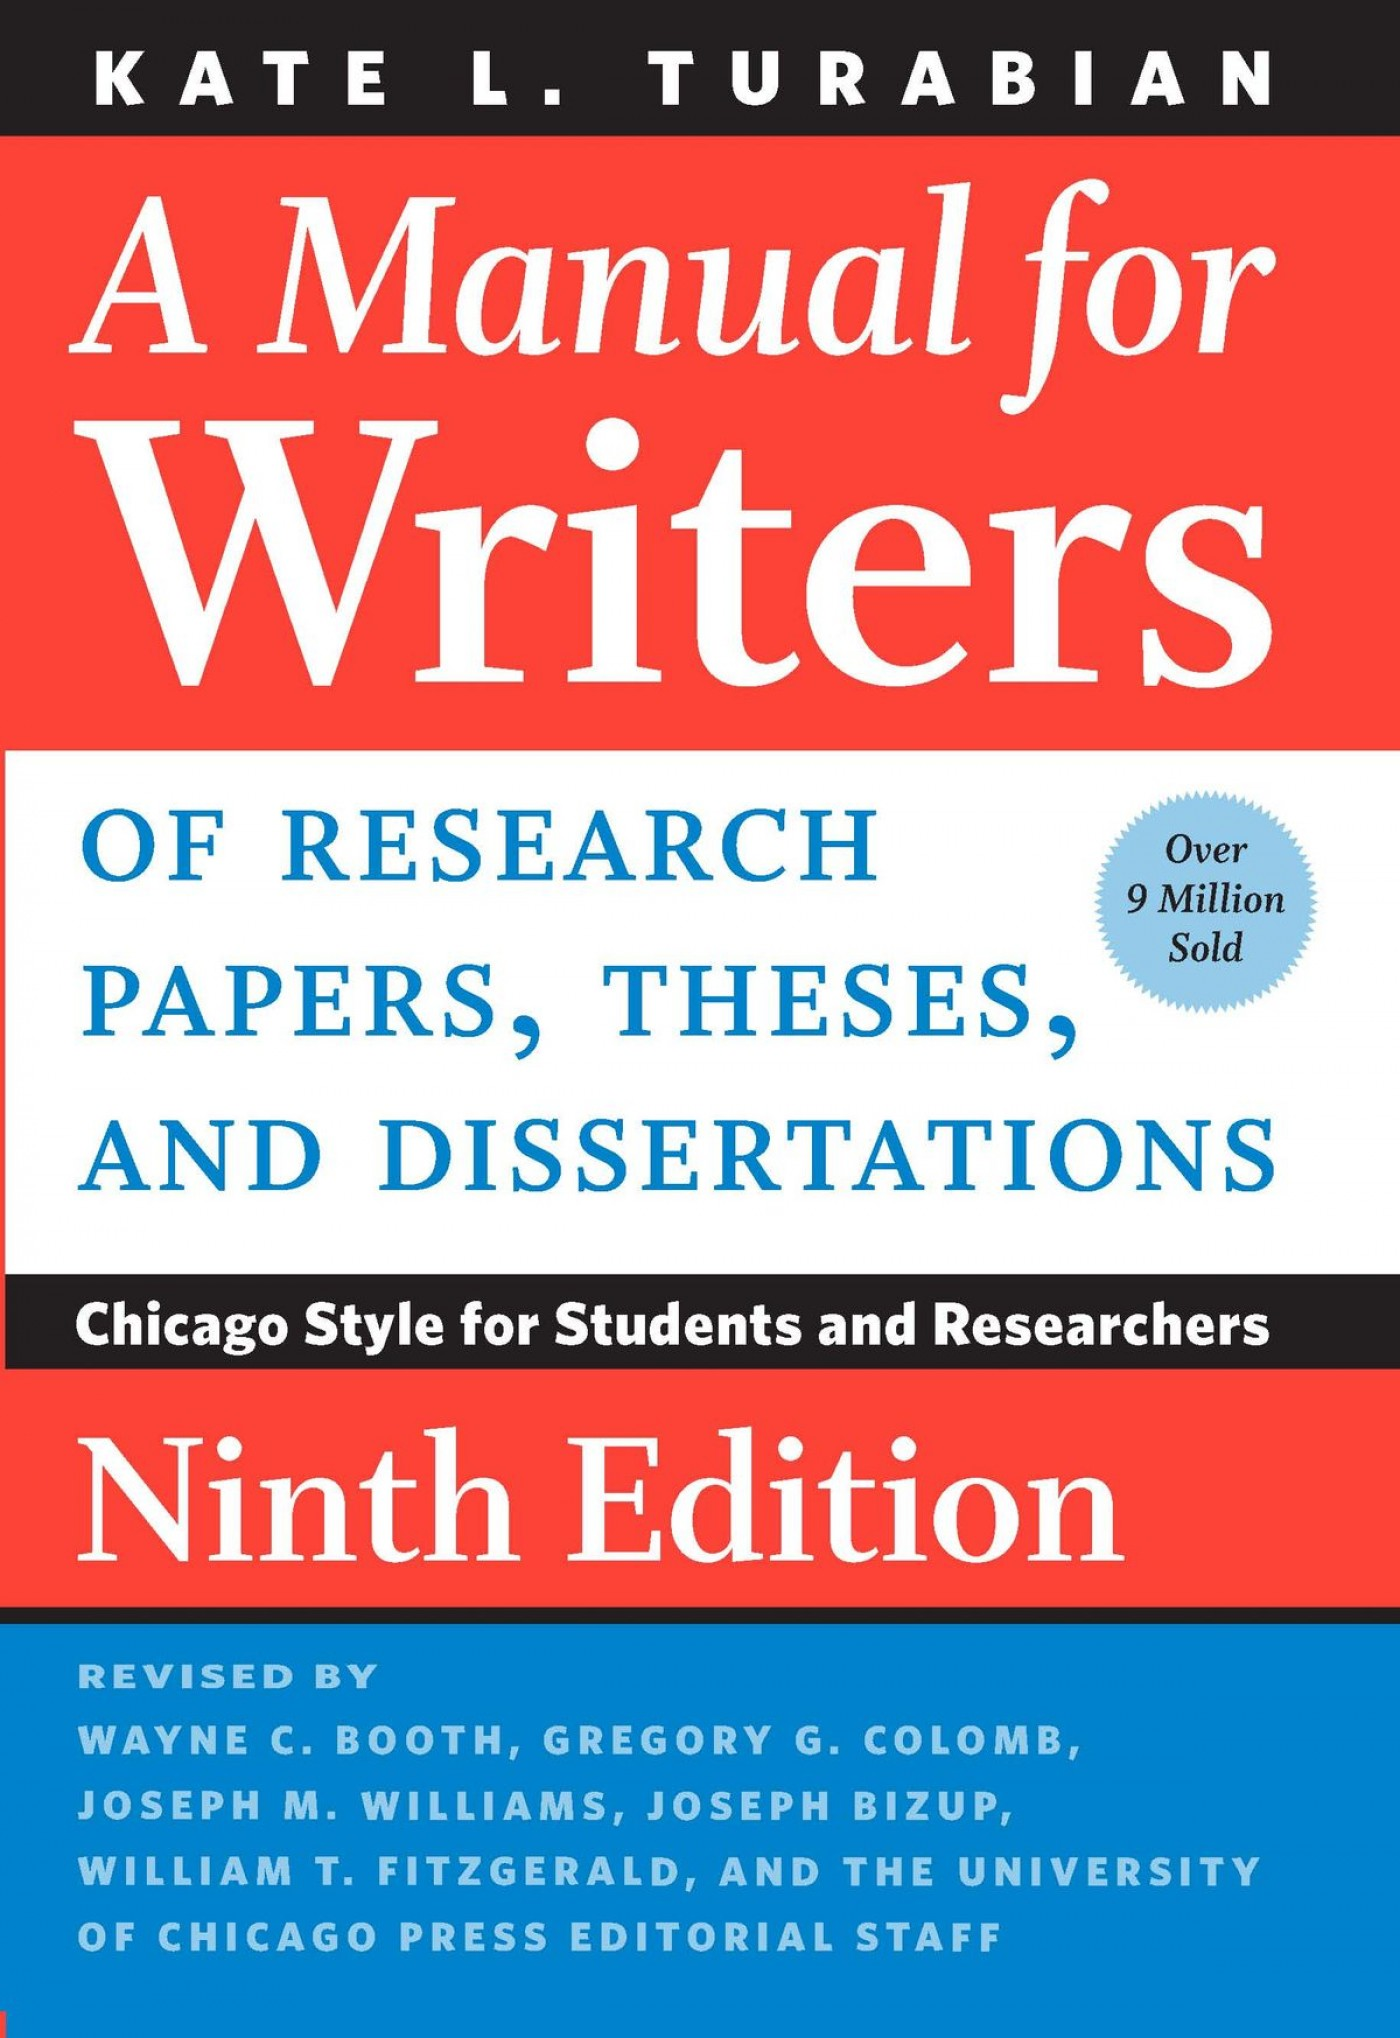 008 Research Paper Manual For Writers Of Papers Theses And Dissertations Ninth Edition Unbelievable A Ebook 1400